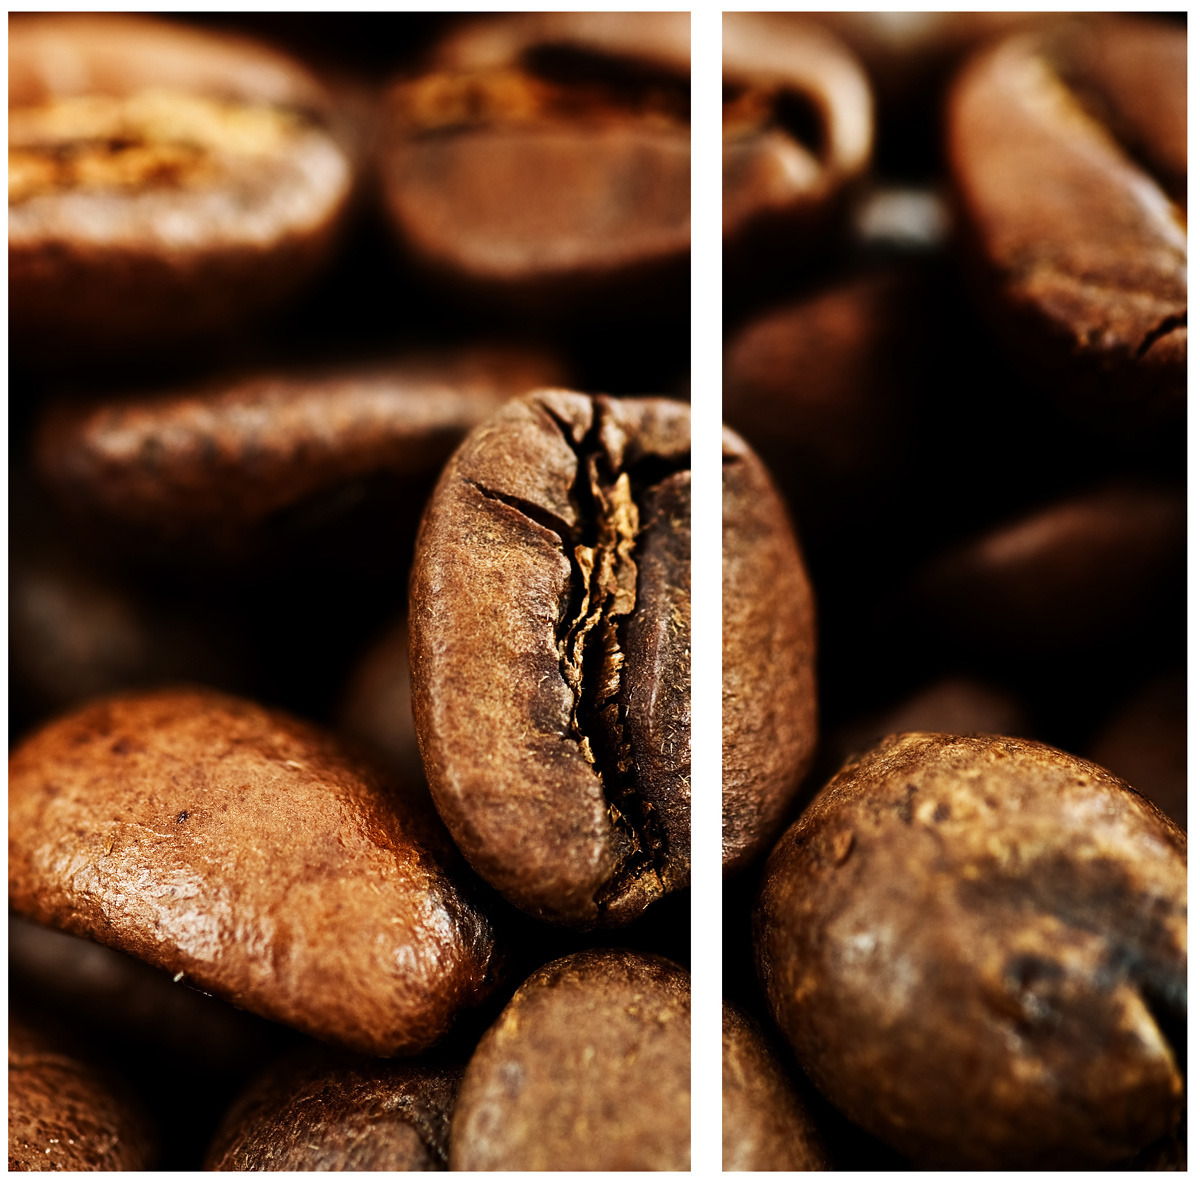 Coffee and coffee beans 18709